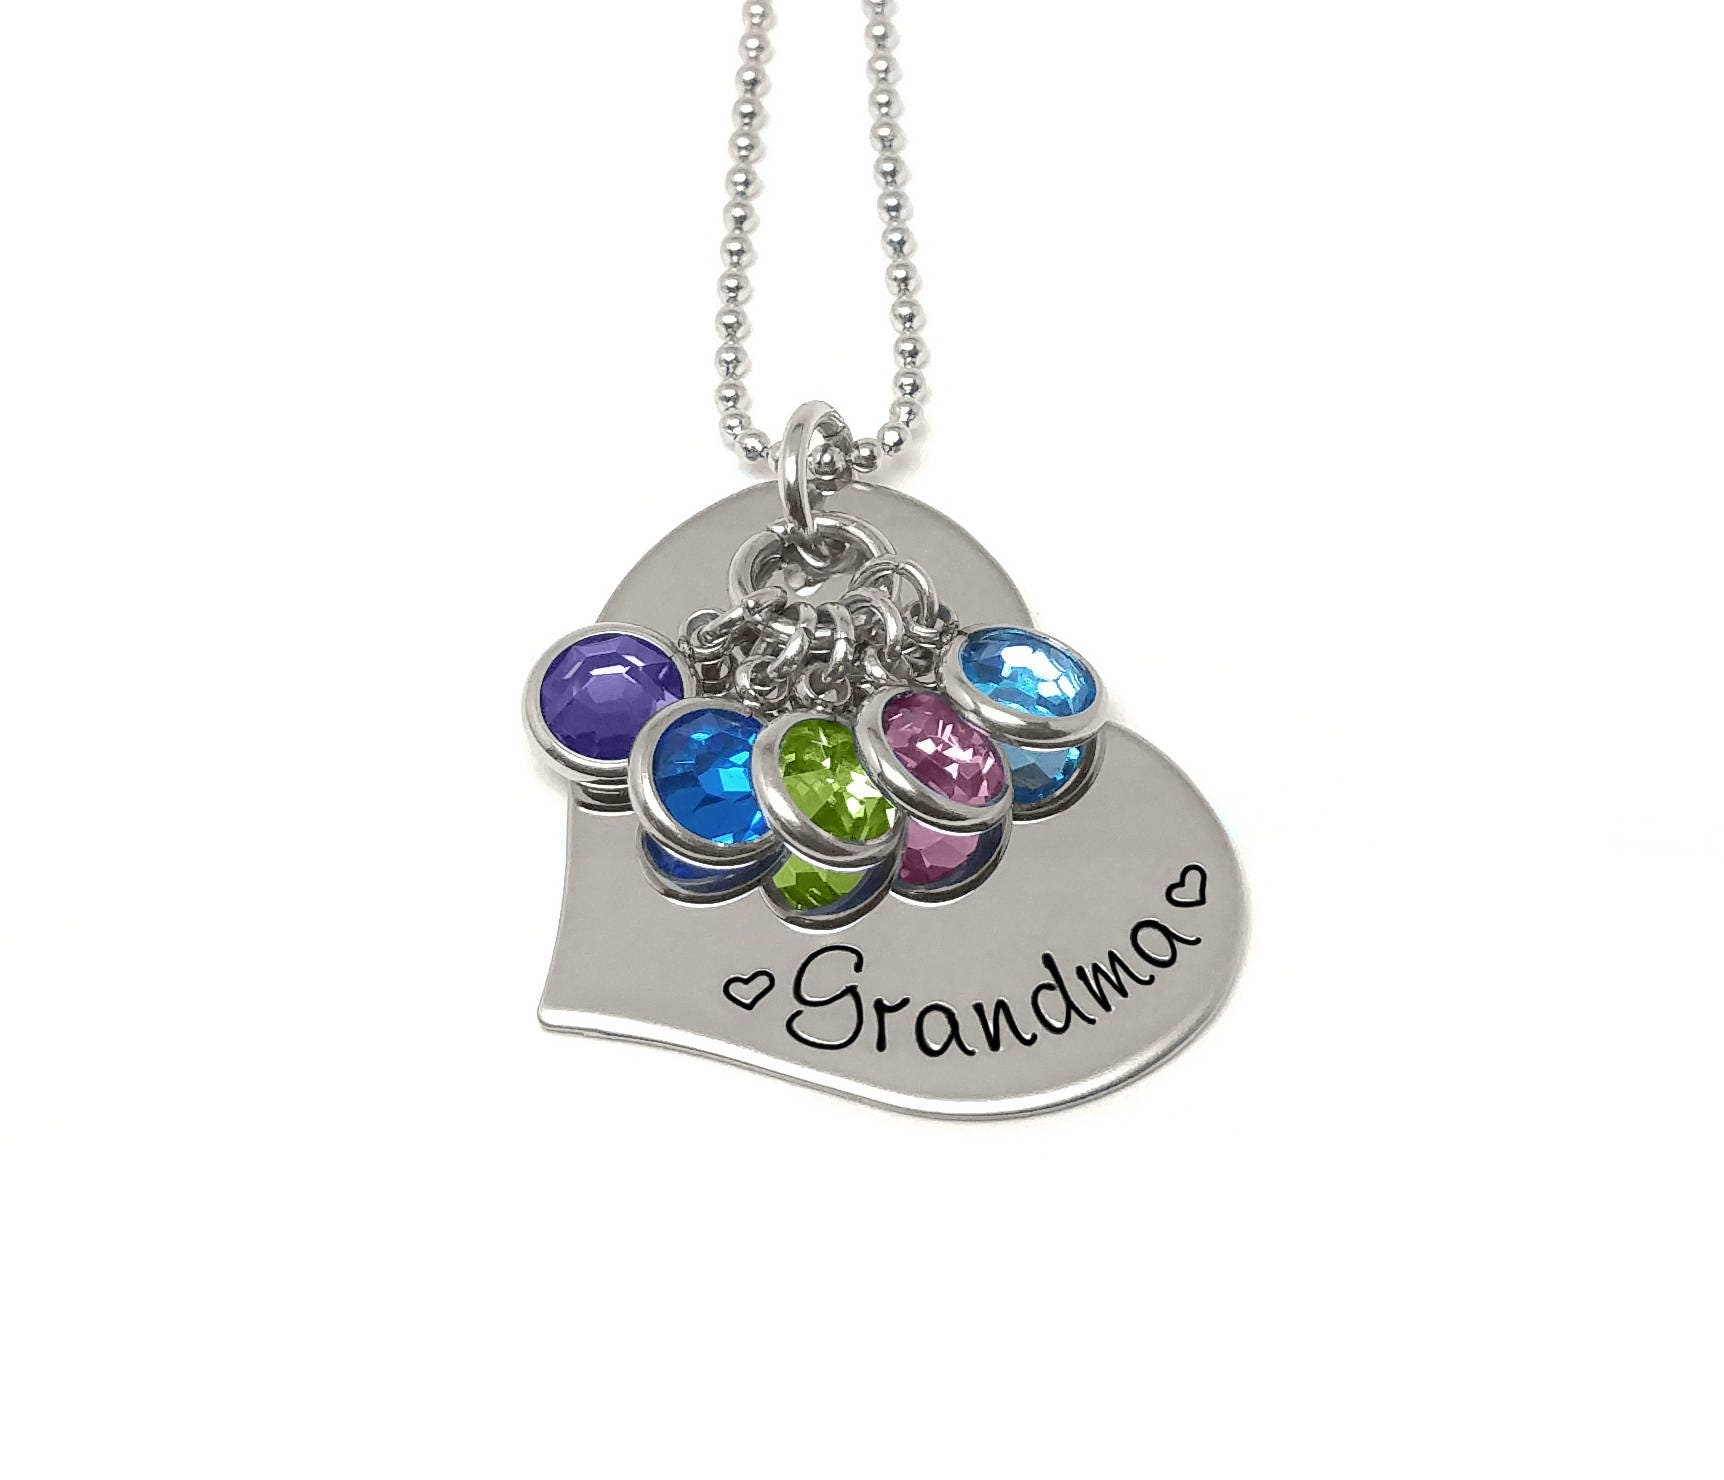 Personalized necklace grandma necklace mother 39 s day for Grandmother jewelry you can add to